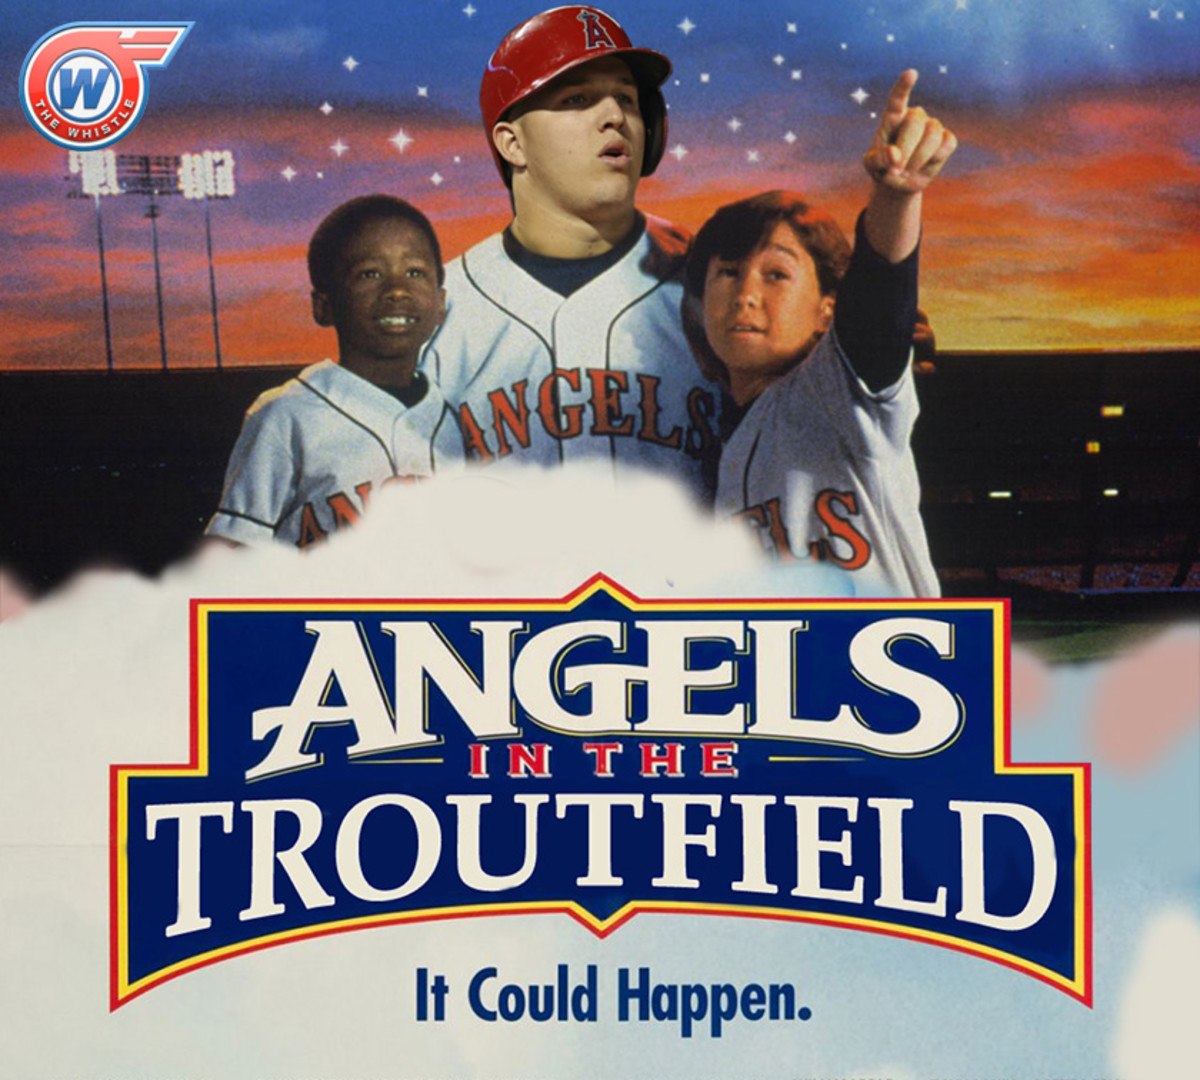 Angels in the Troutfield